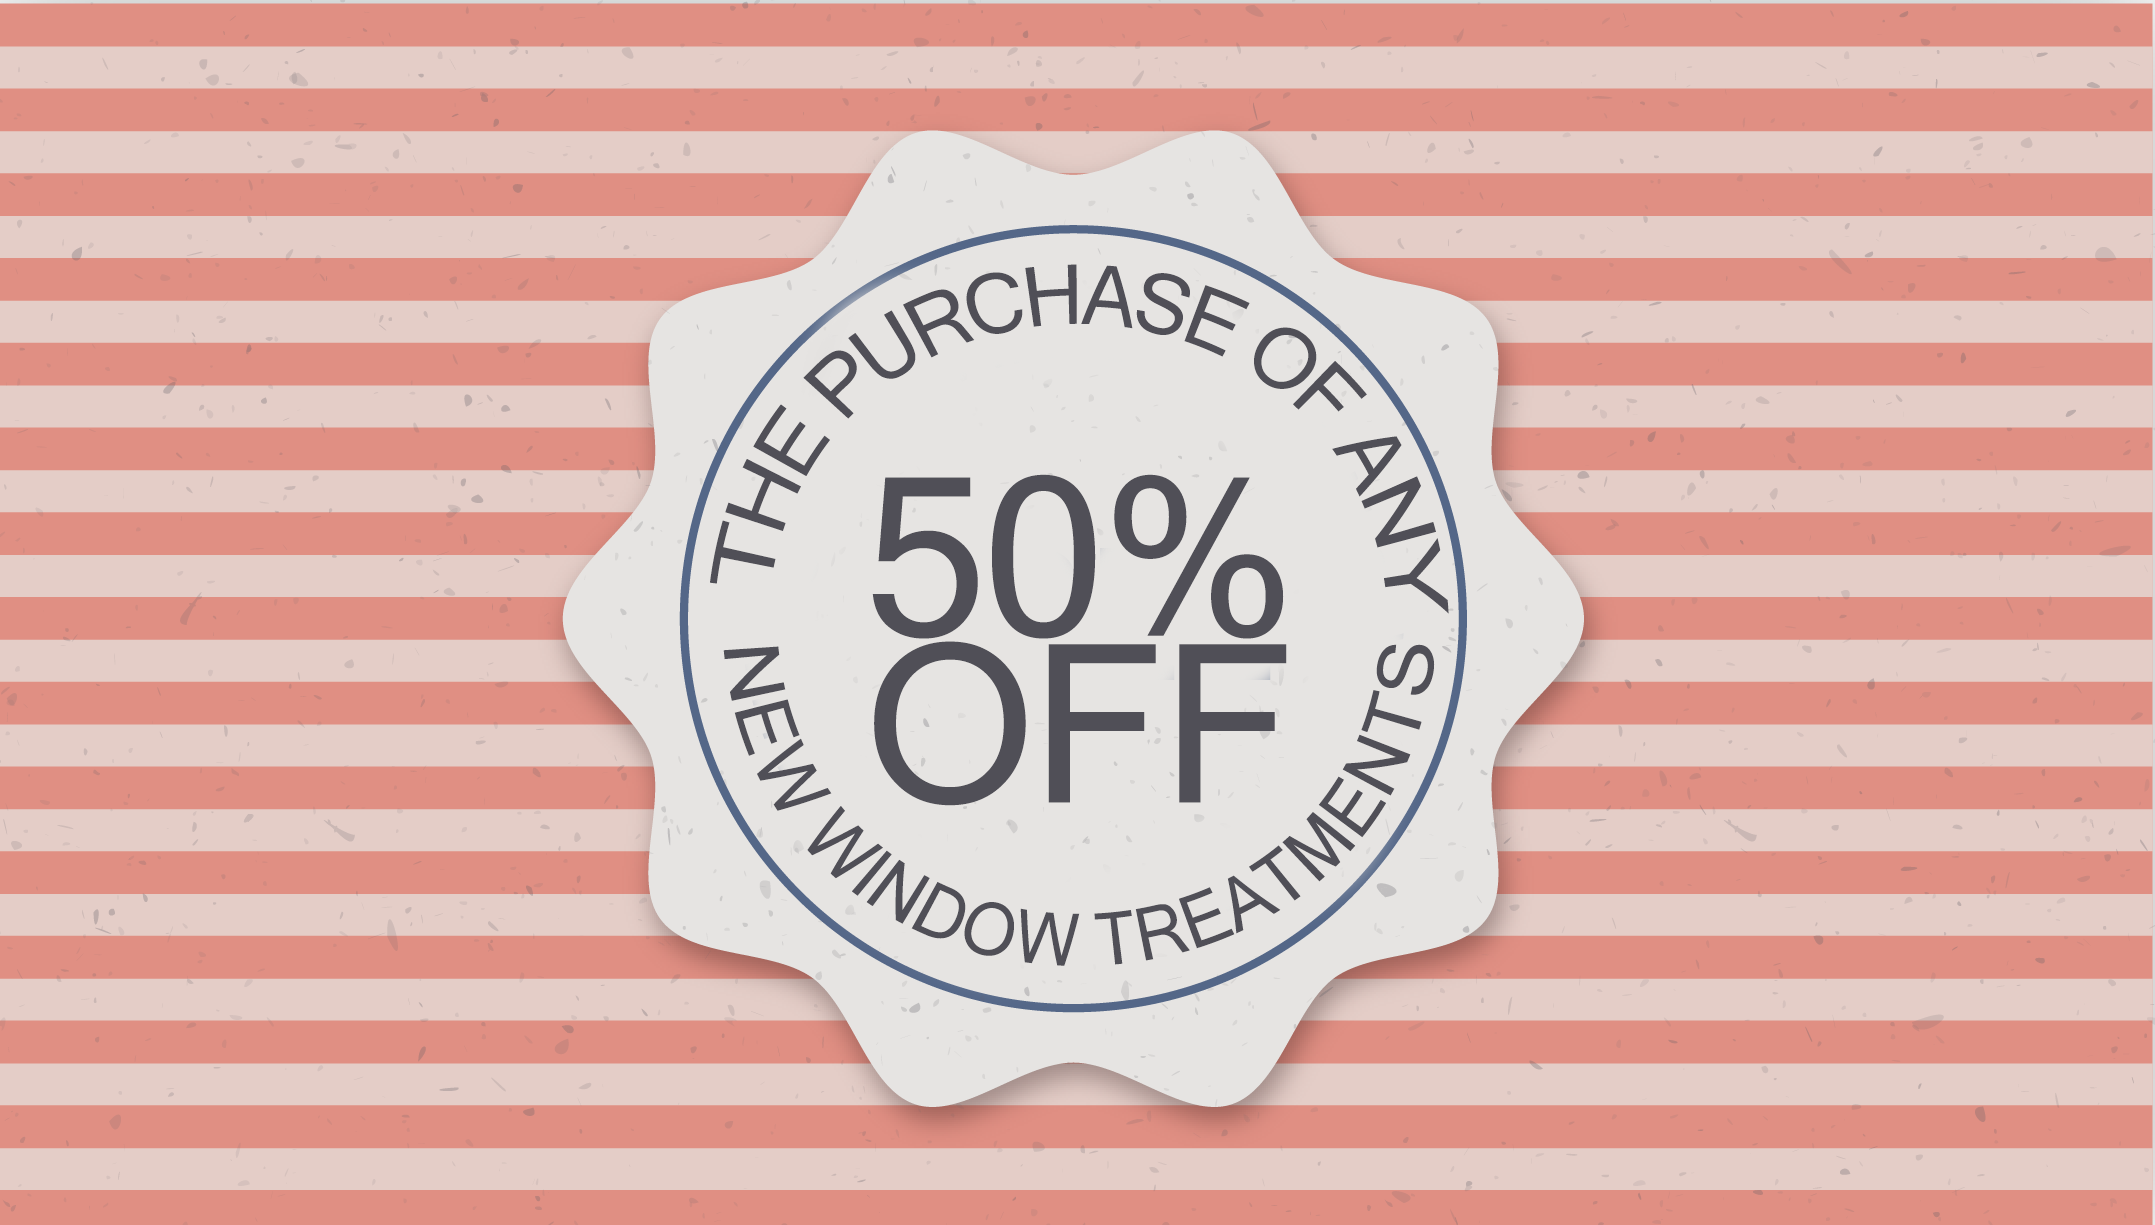 50 OFF THE PURCHASE OF ANY NEW WINDOW TREATMENTS